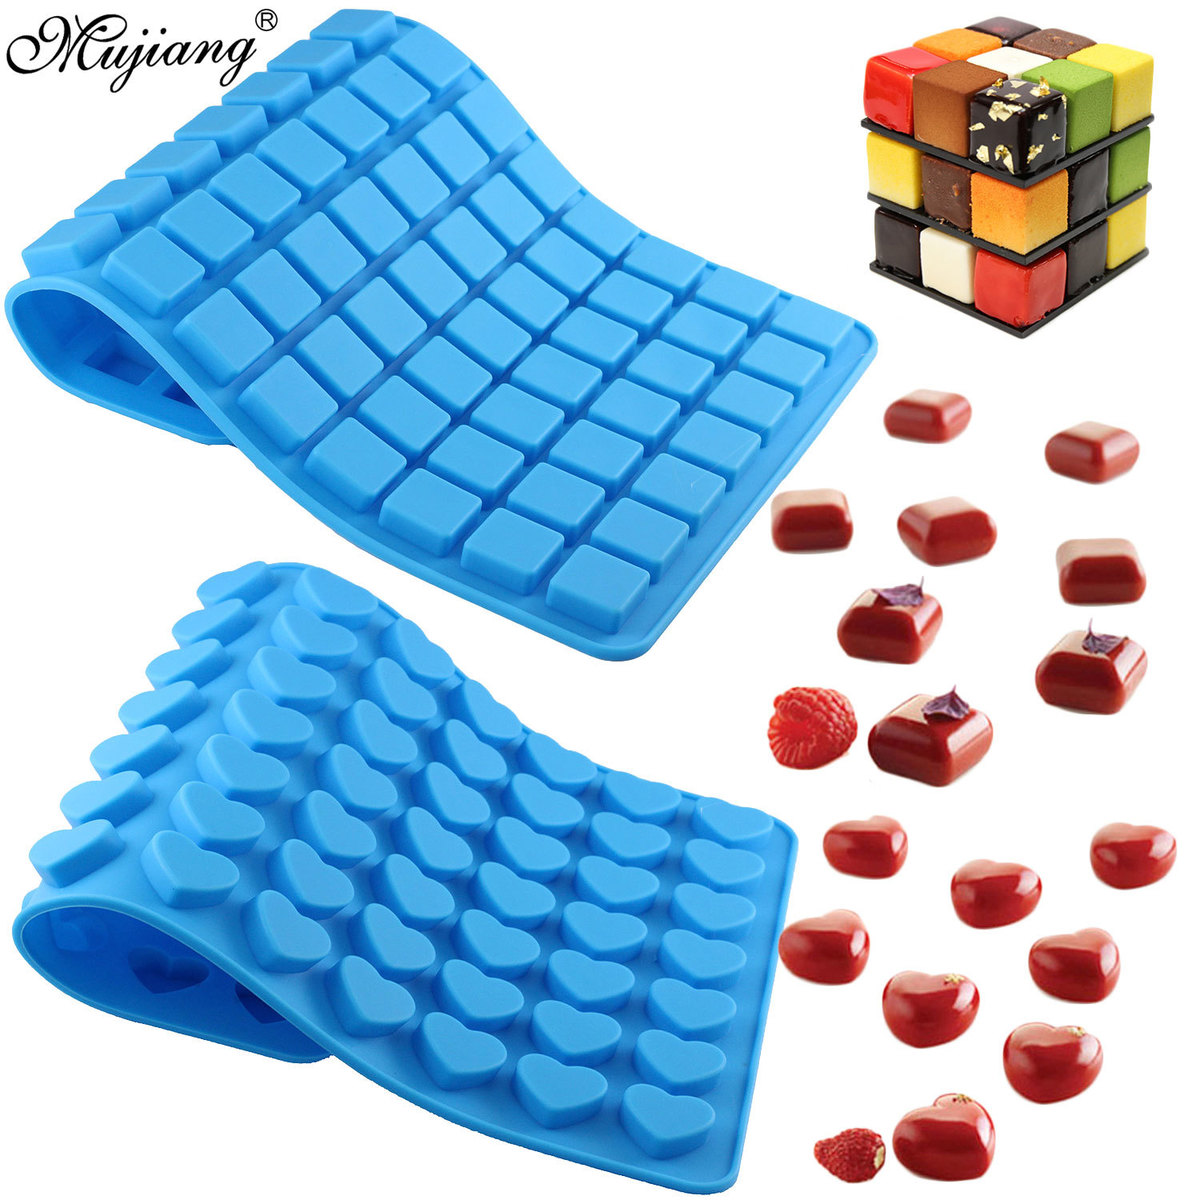 77 Cavity Square 70 Heart Silicone Mold Cake Decorating Ice Tray Jelly Chocolate Hard Candy Gummy Mold DIY Dessert Baking Moulds